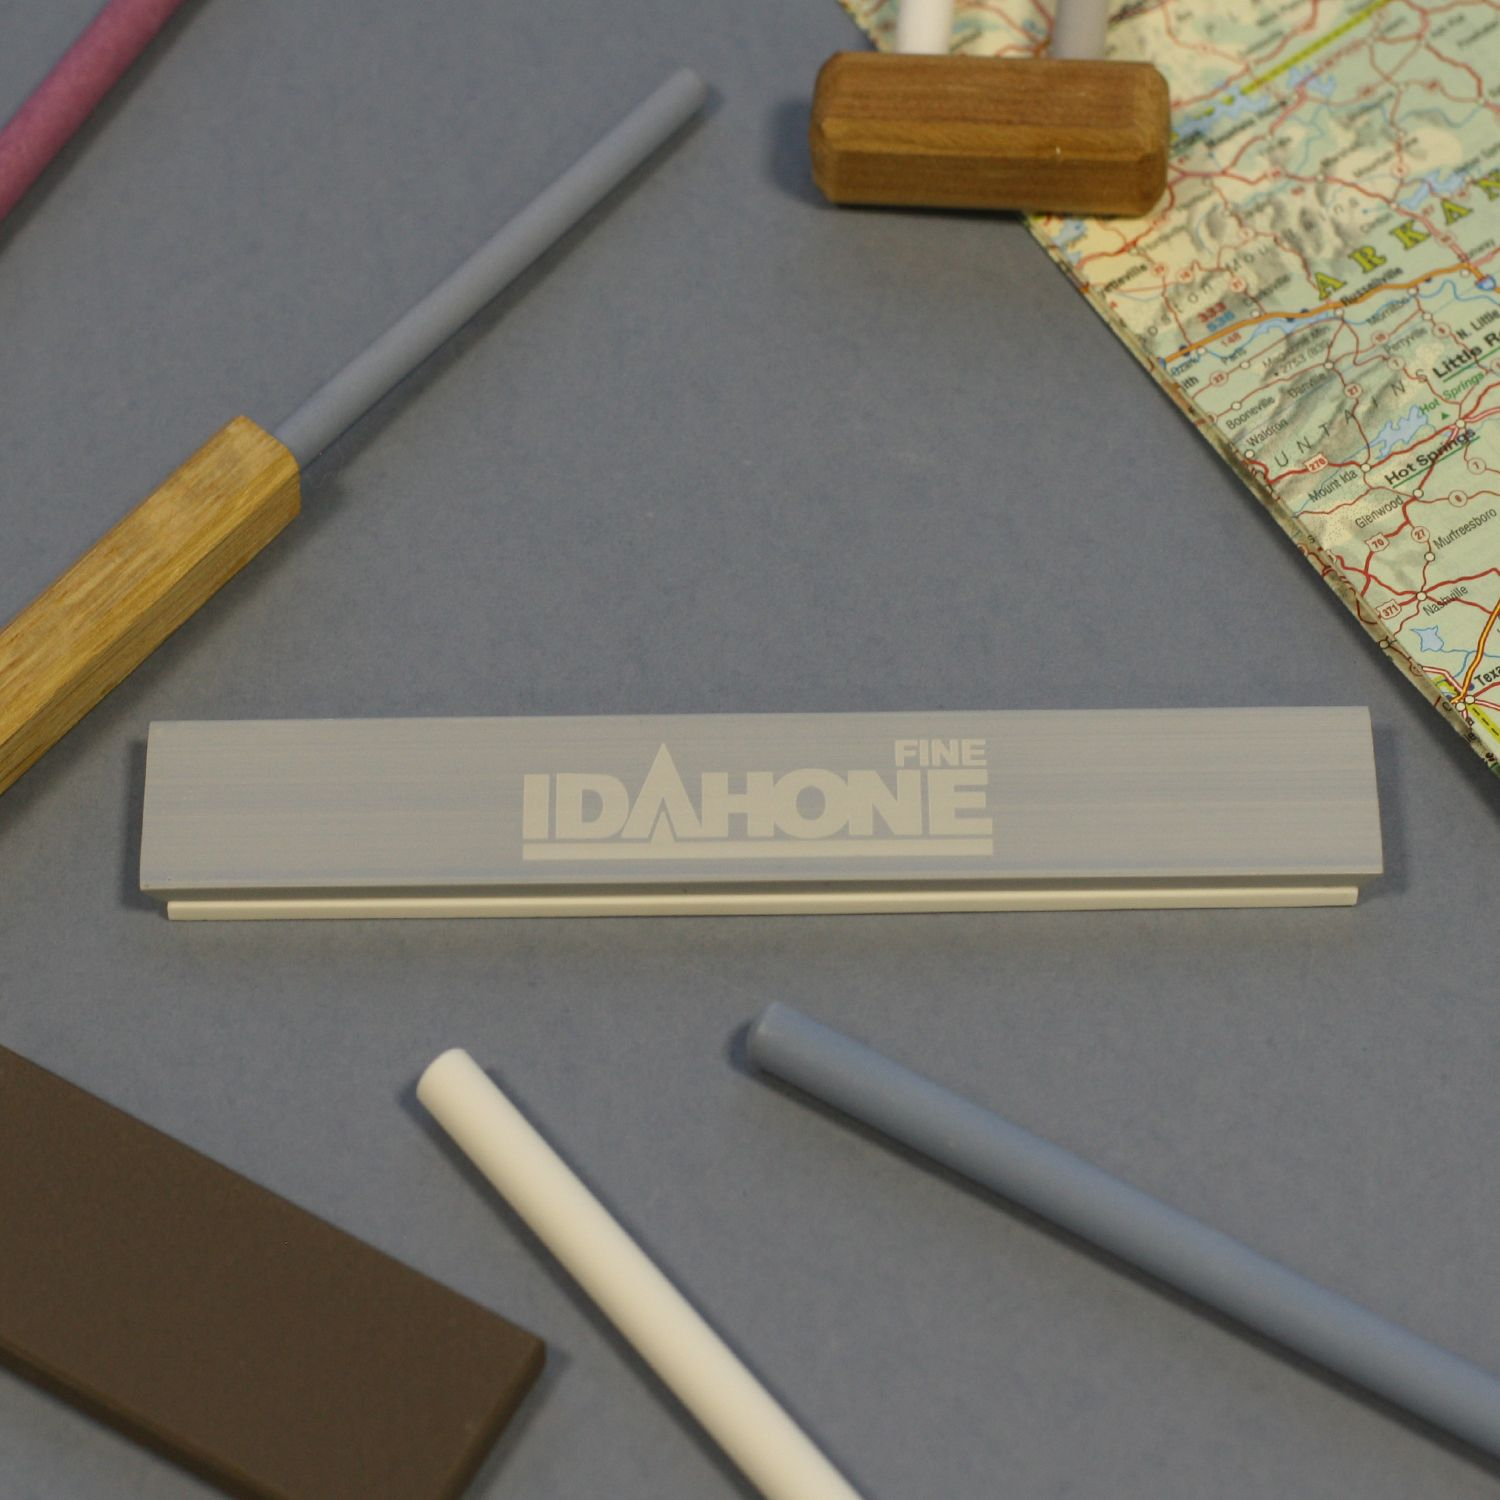 IDAHONE ceramic sharpening stone (Edge Pro format) mounted on aluminum blank